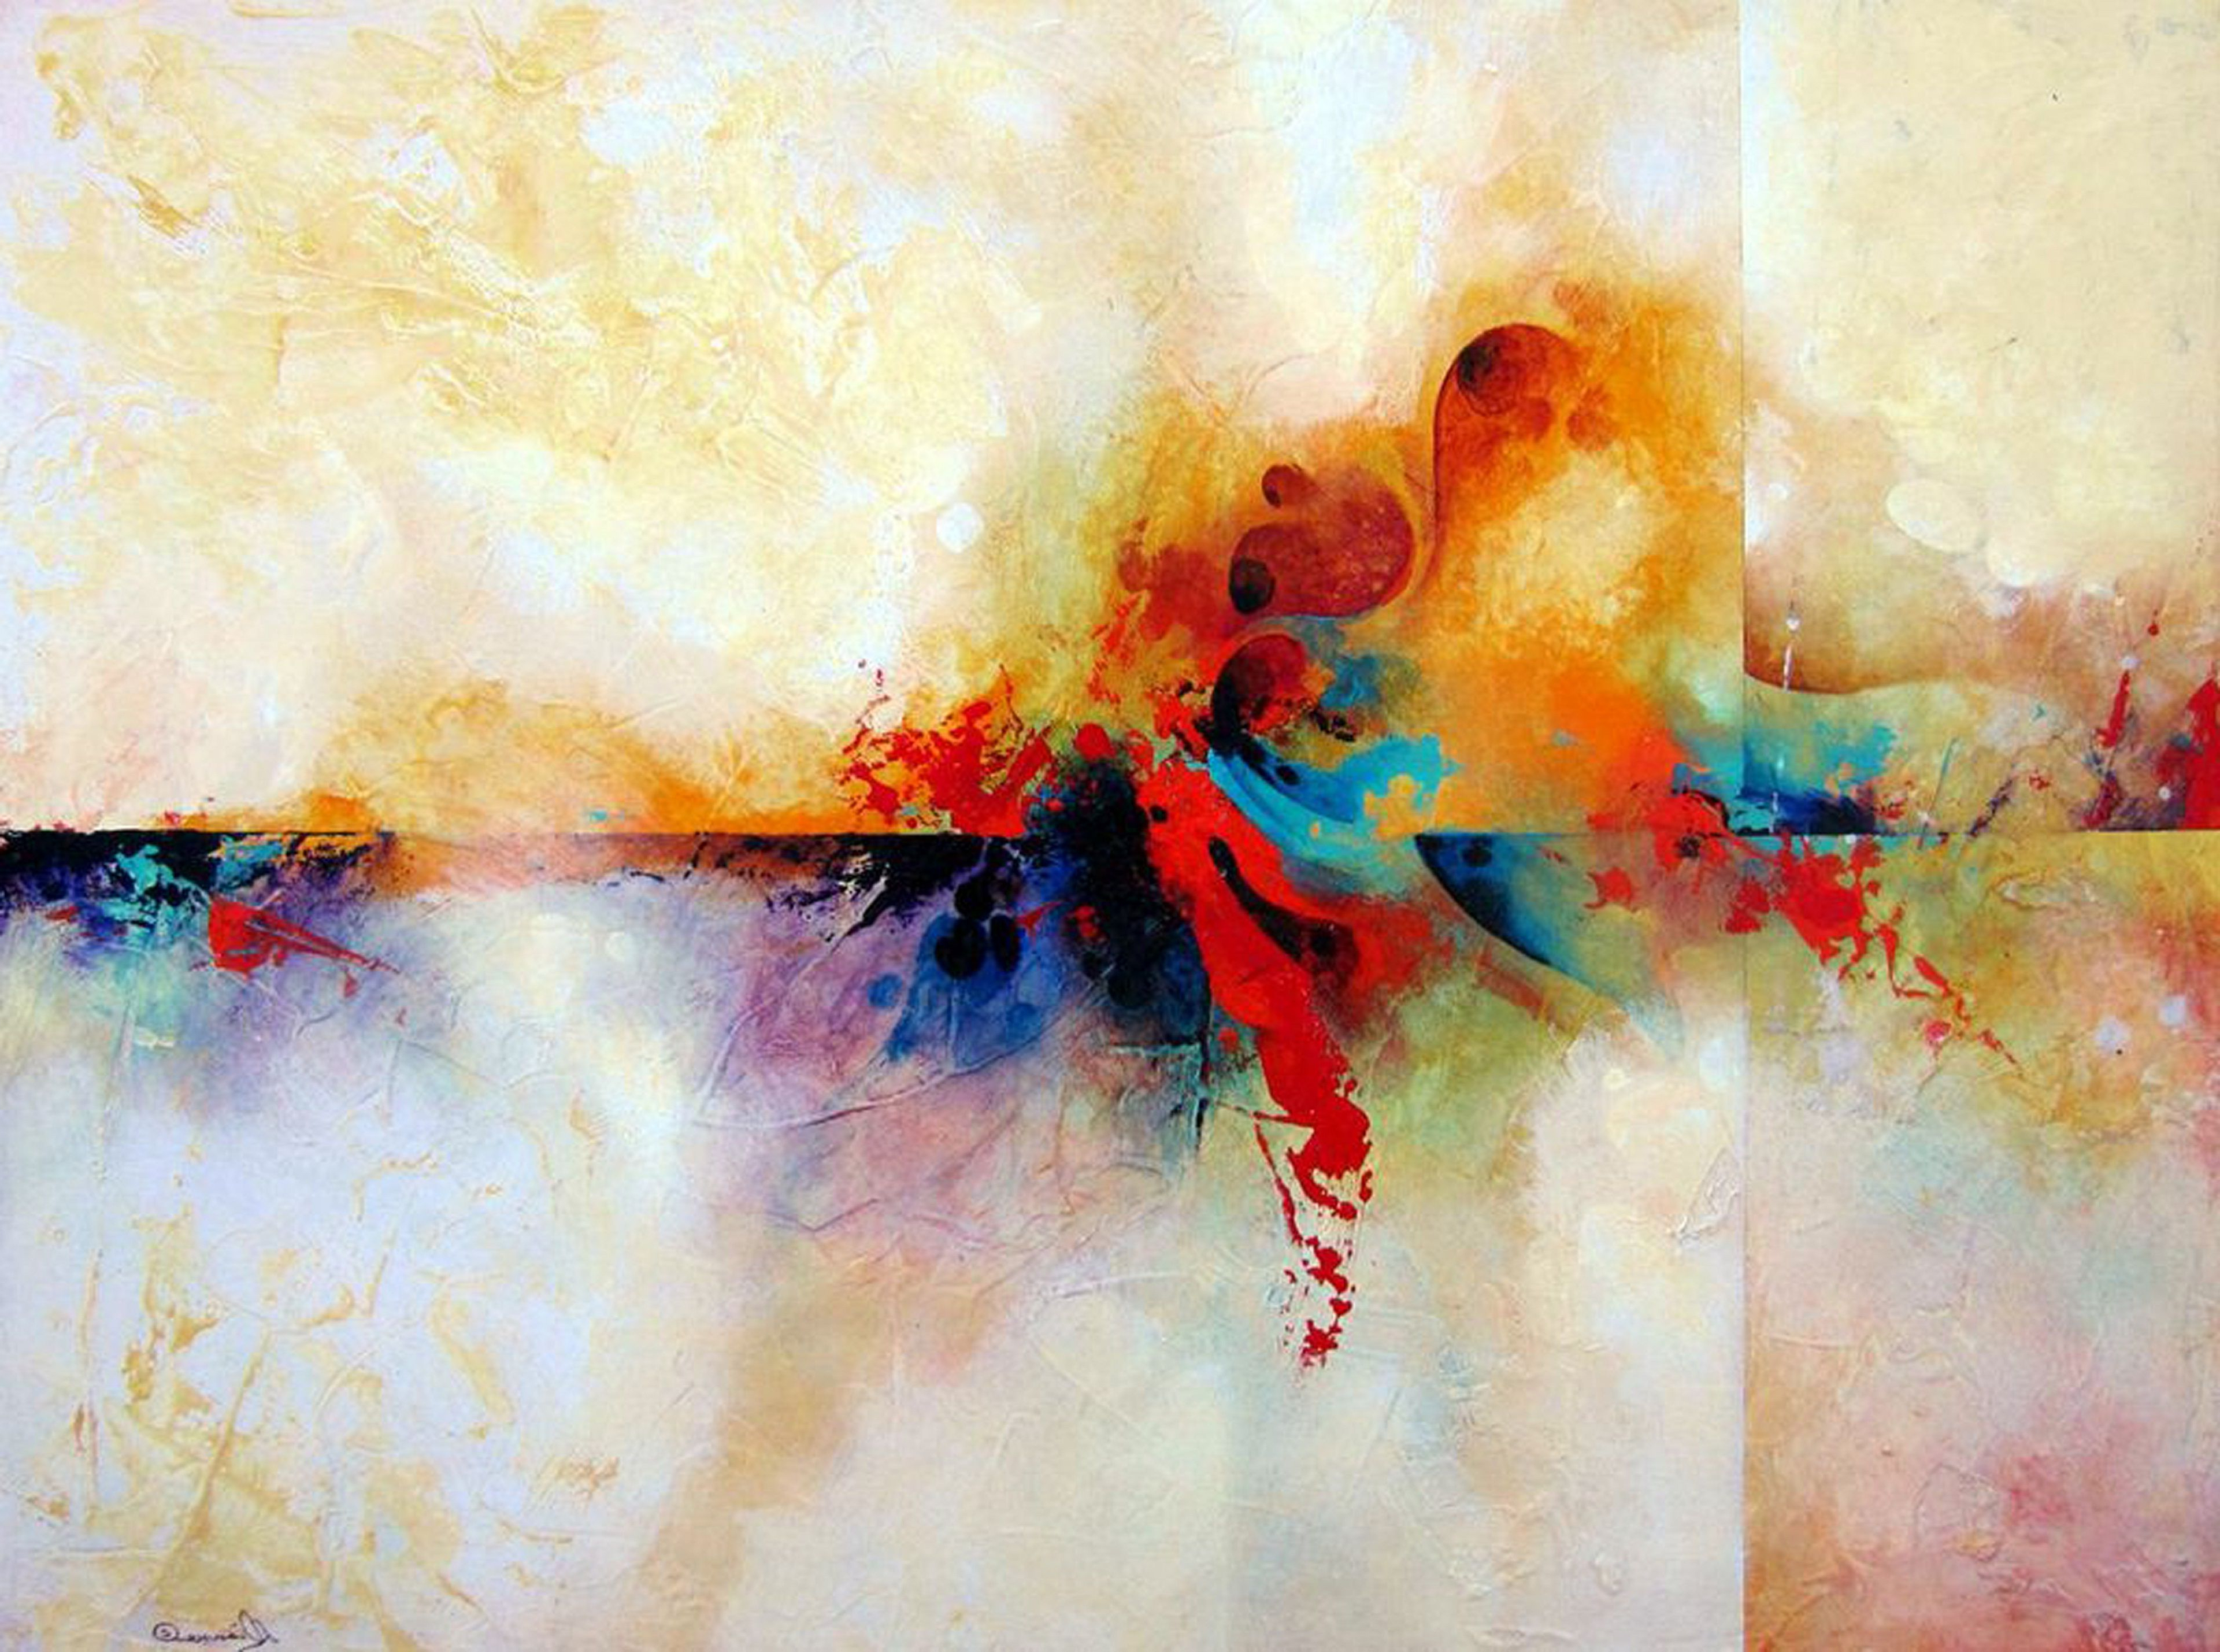 3841x2858 Famous Abstract Watercolor Paintings Famous Abstract Watercolor